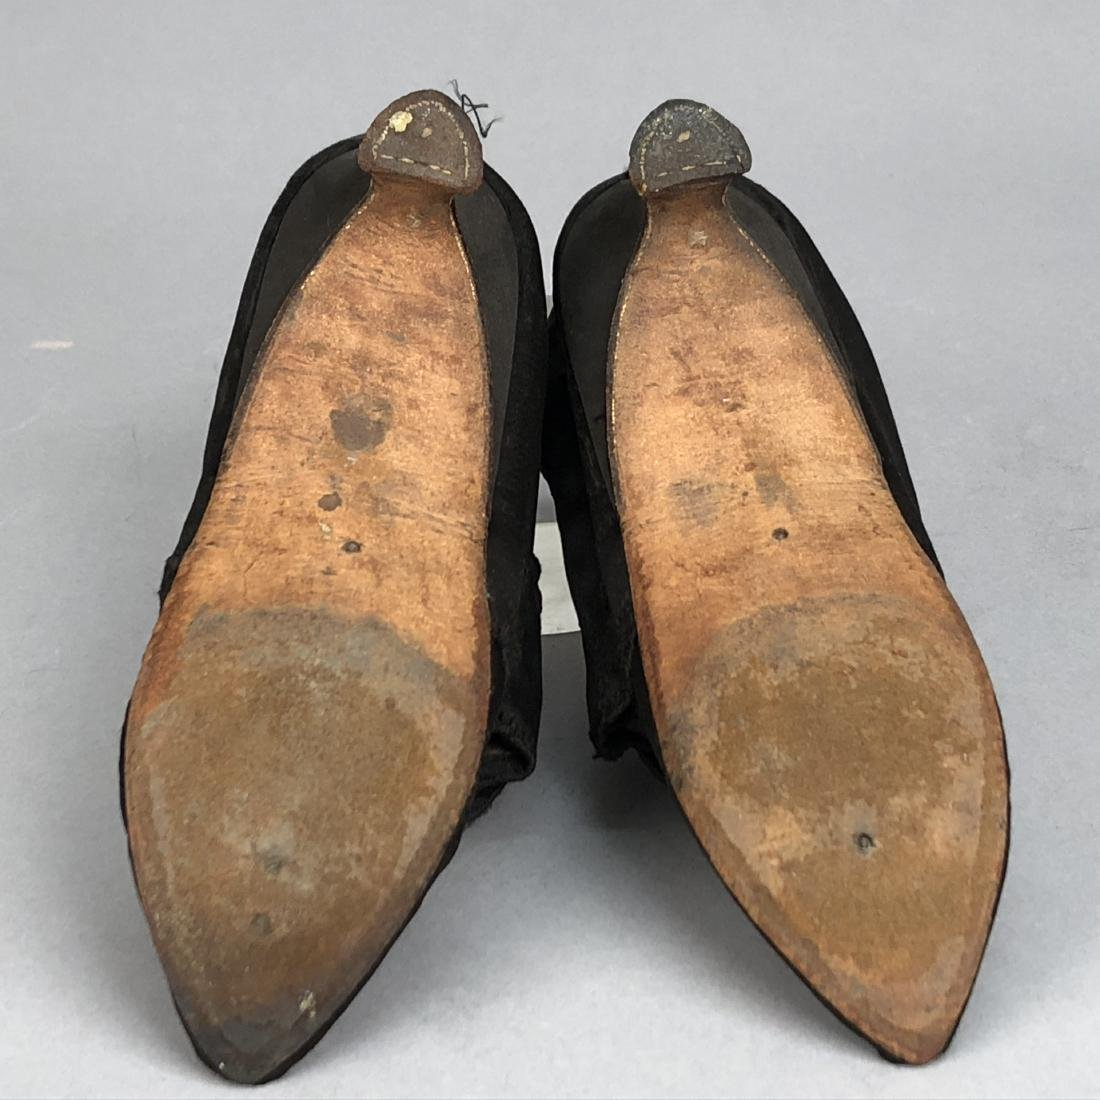 SATIN SHOES with DIAMANTE BUCKLES, 1770s - 3